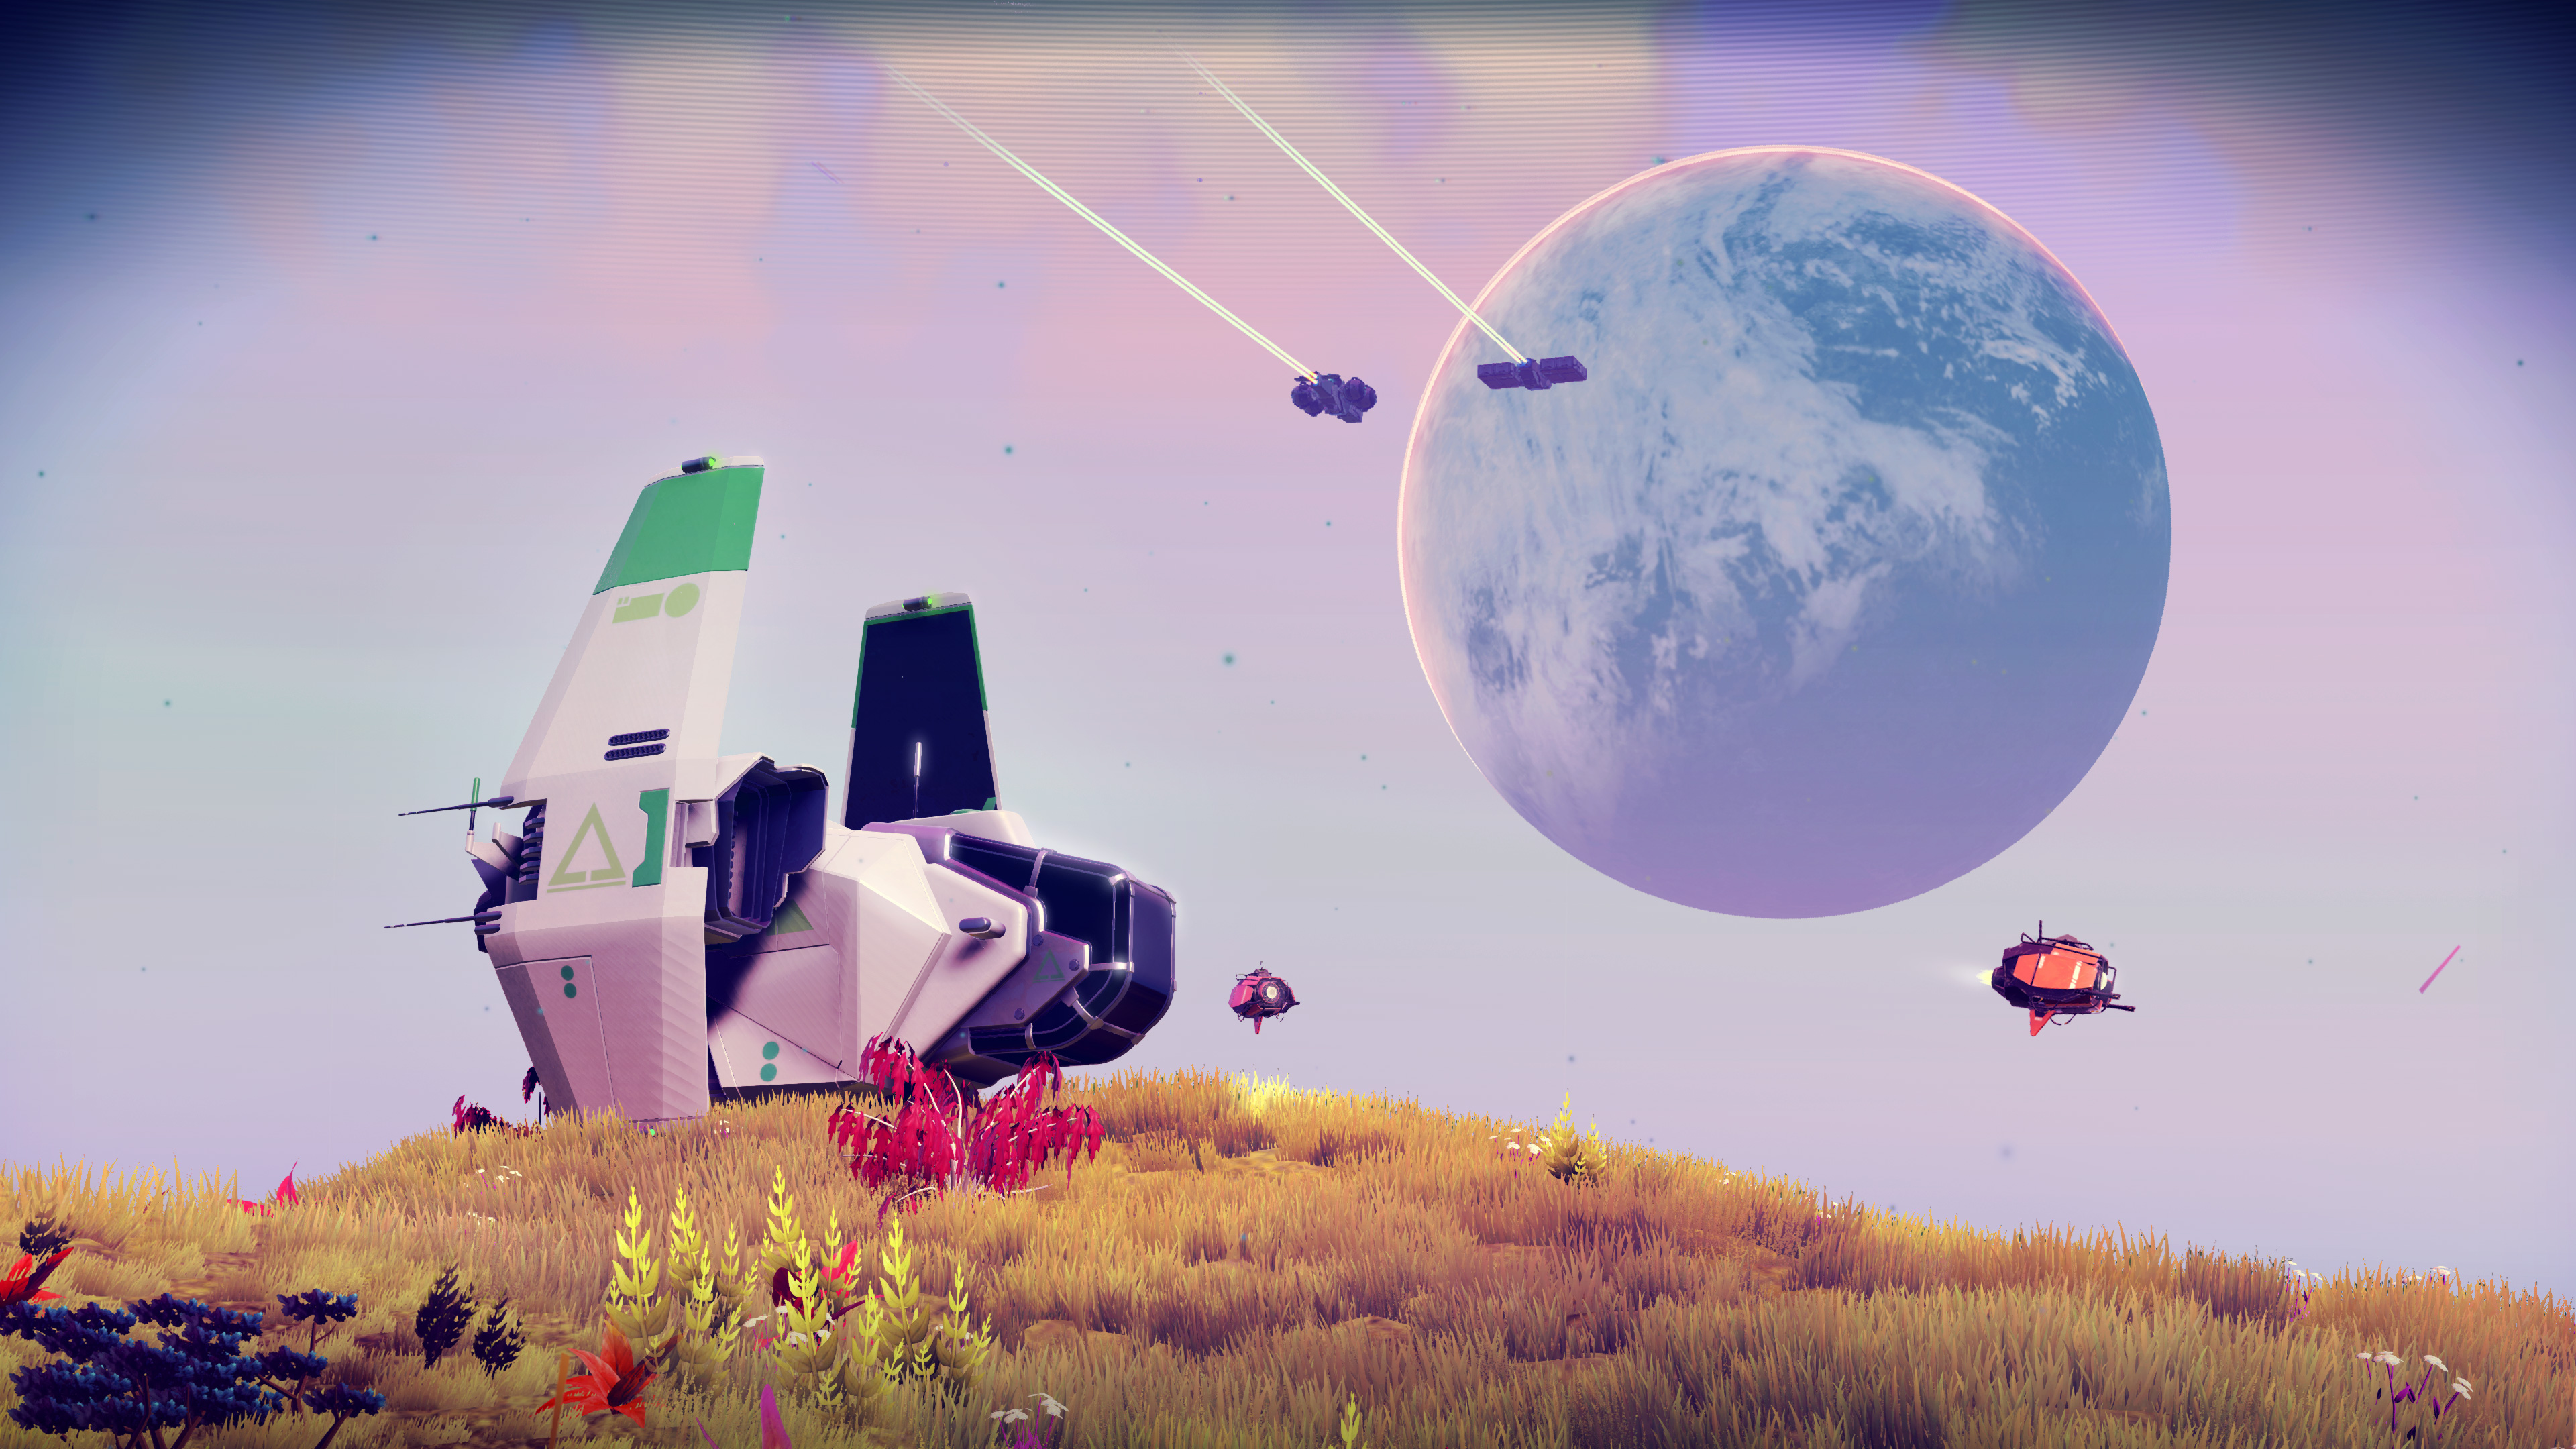 1280x2120 No Mans Sky 4k Iphone 6 Hd 4k Wallpapers Images